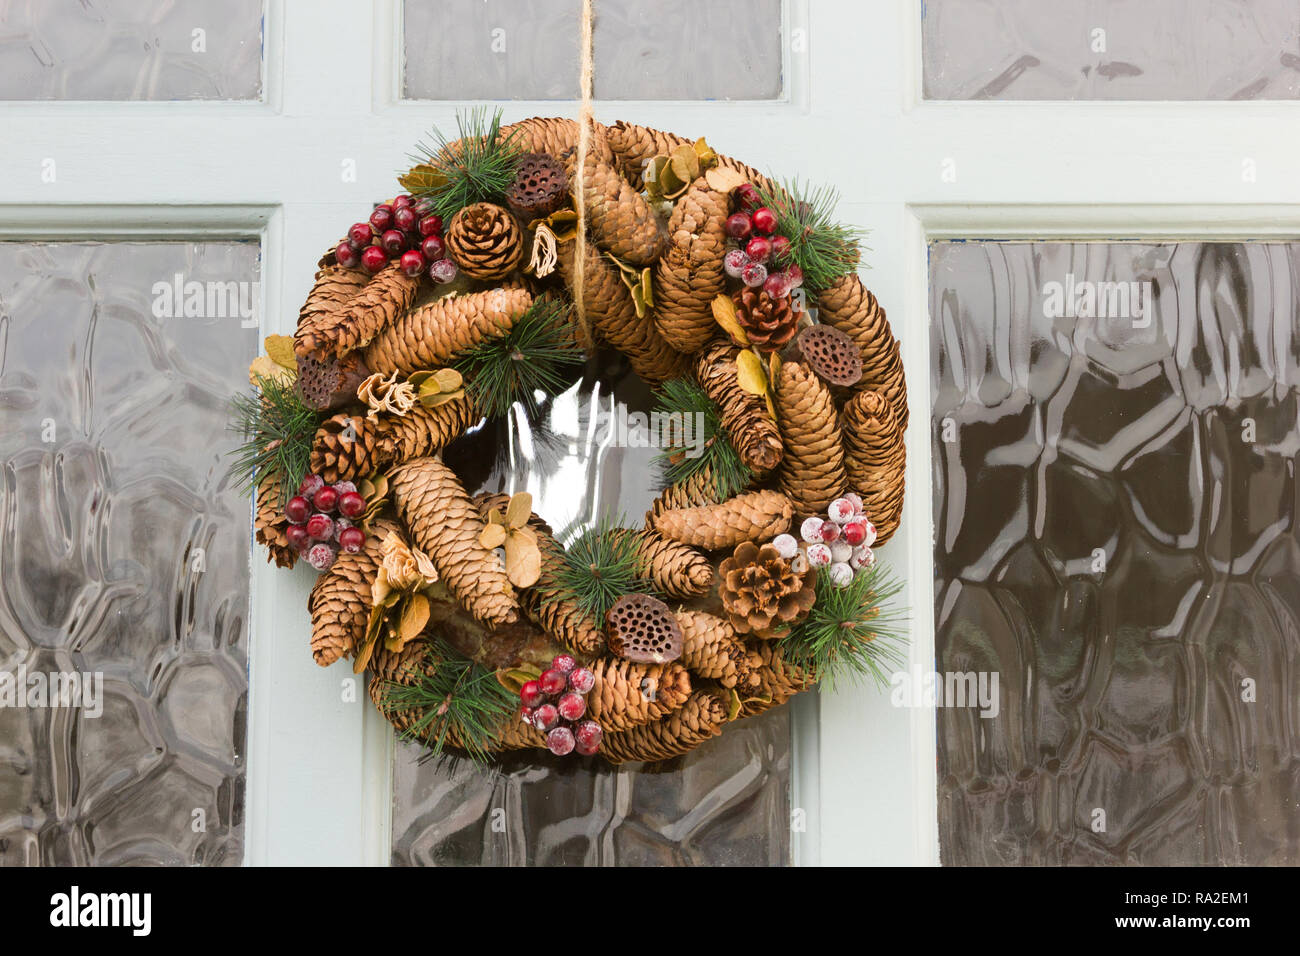 Decorative Wreaths On A Front Door Stock Photo Alamy